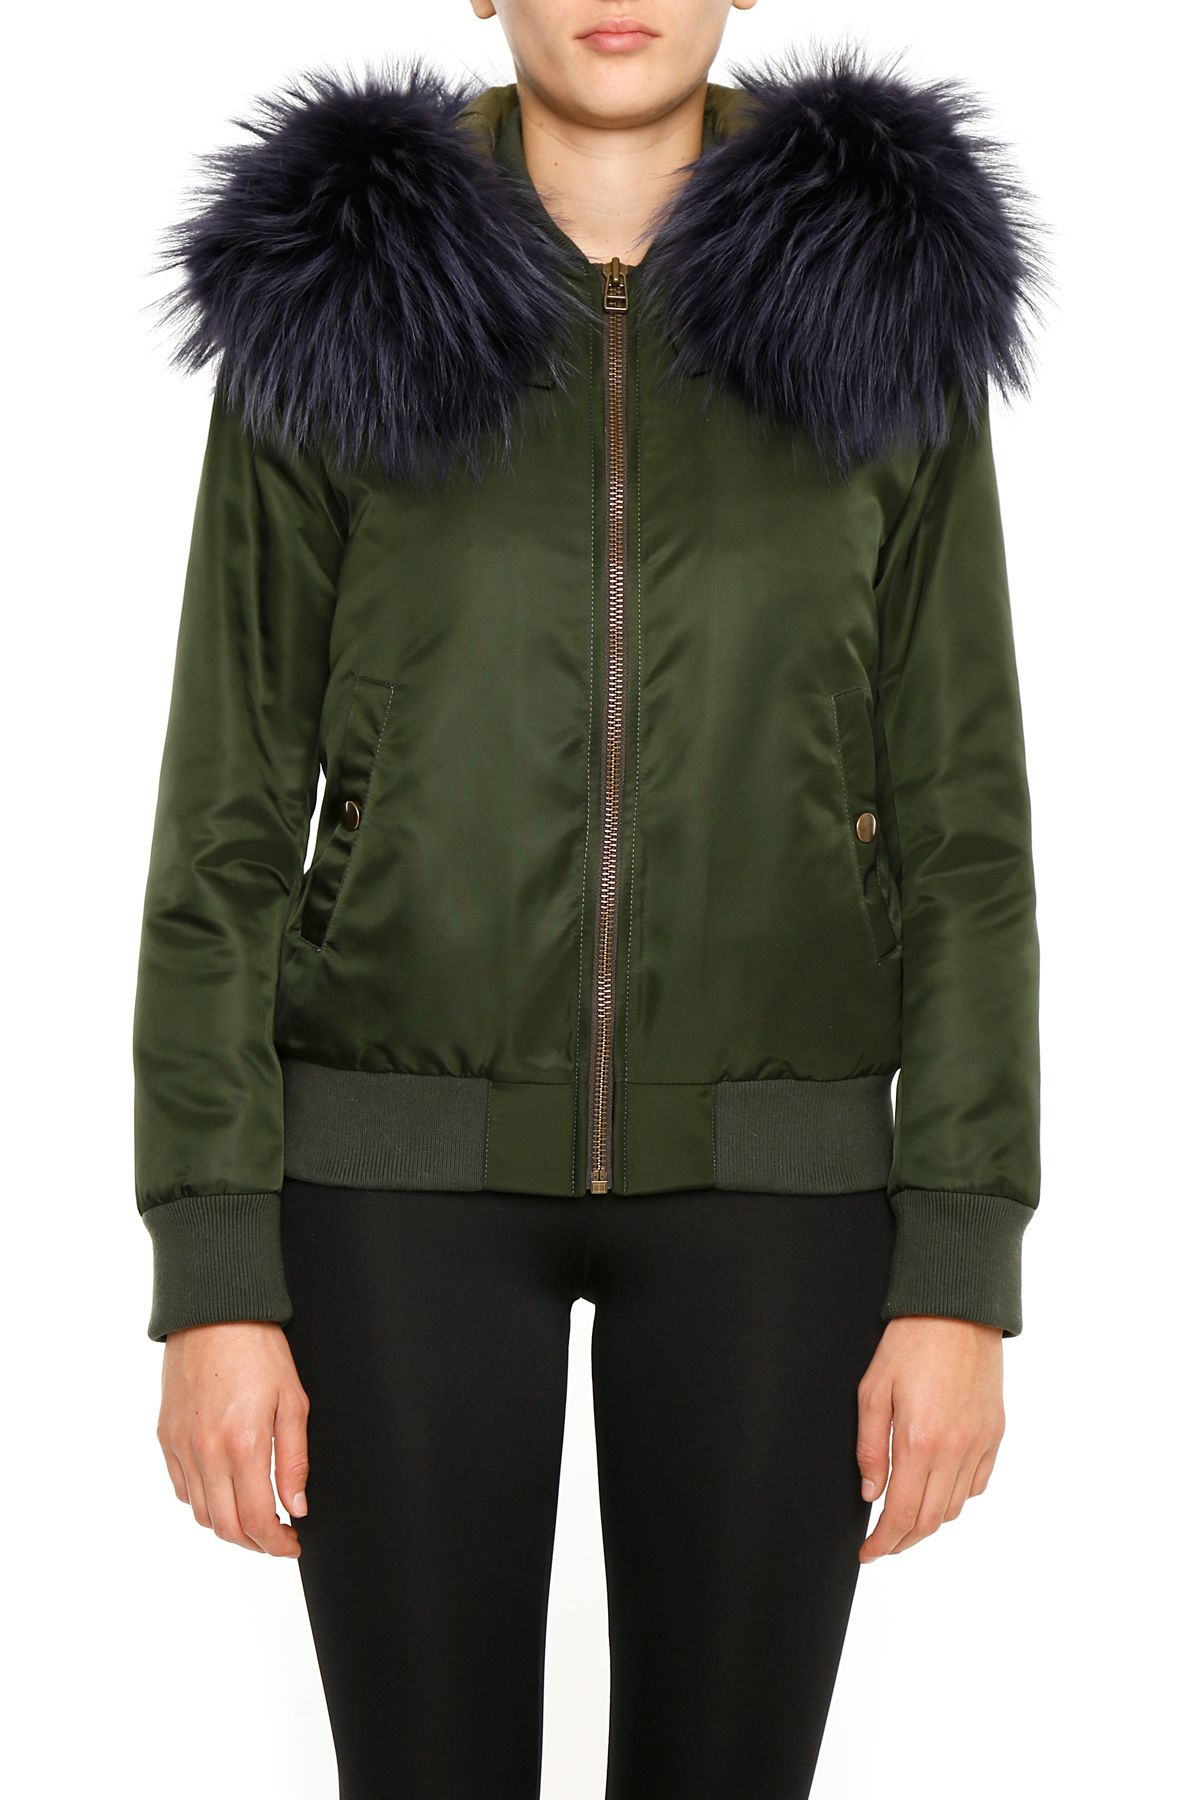 MR & MRS ITALY Detachable Hood Bomber Jacket  in Green